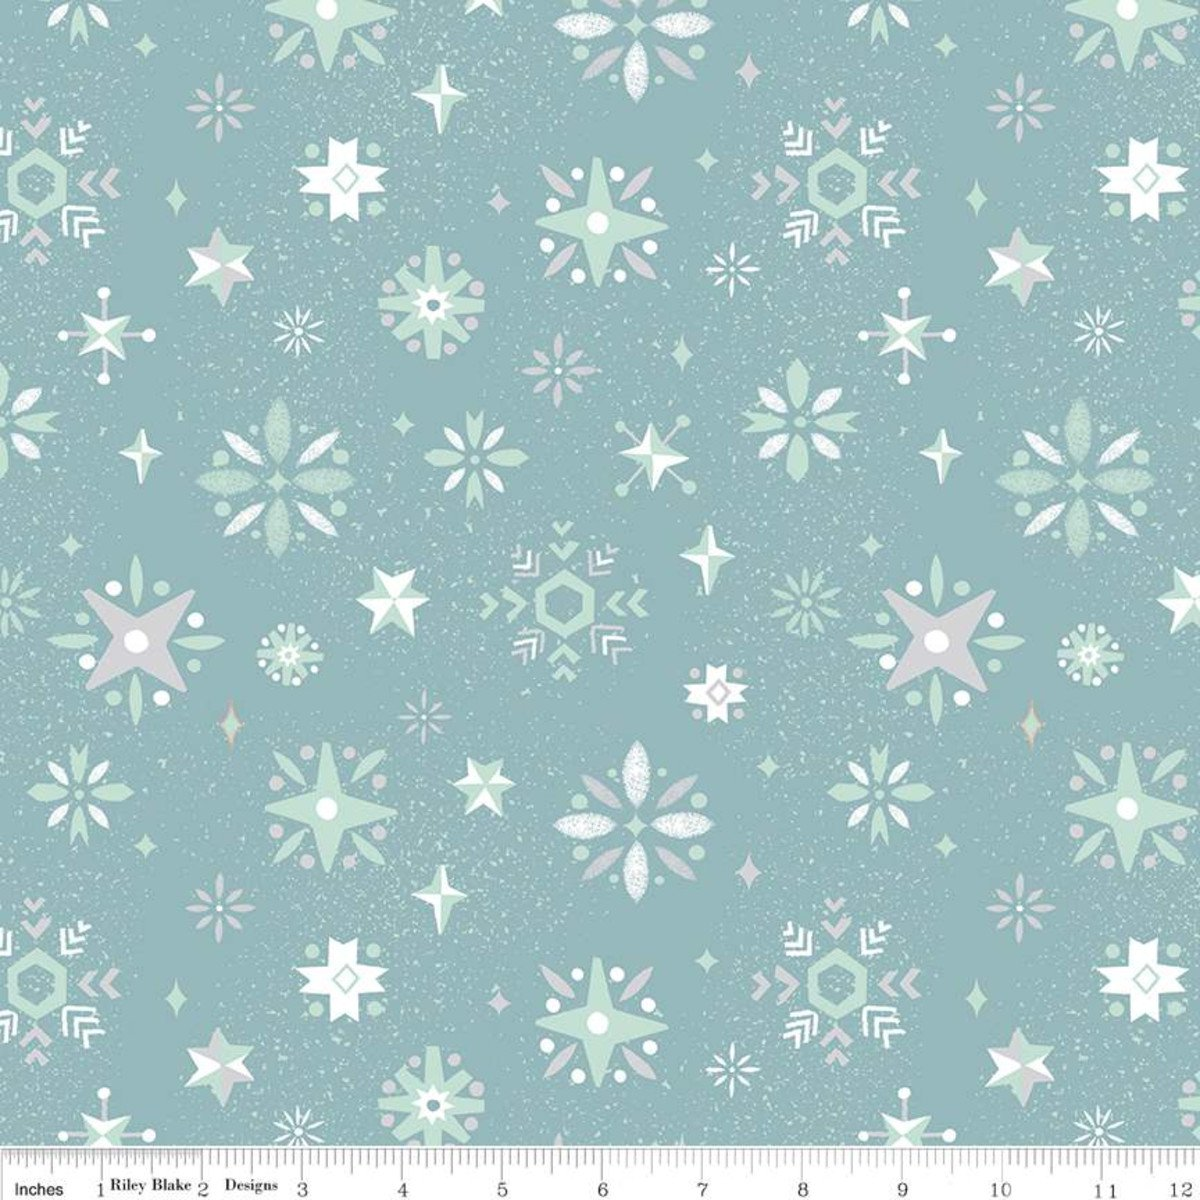 C7324-BLUE Modern Snowflakes white on blue